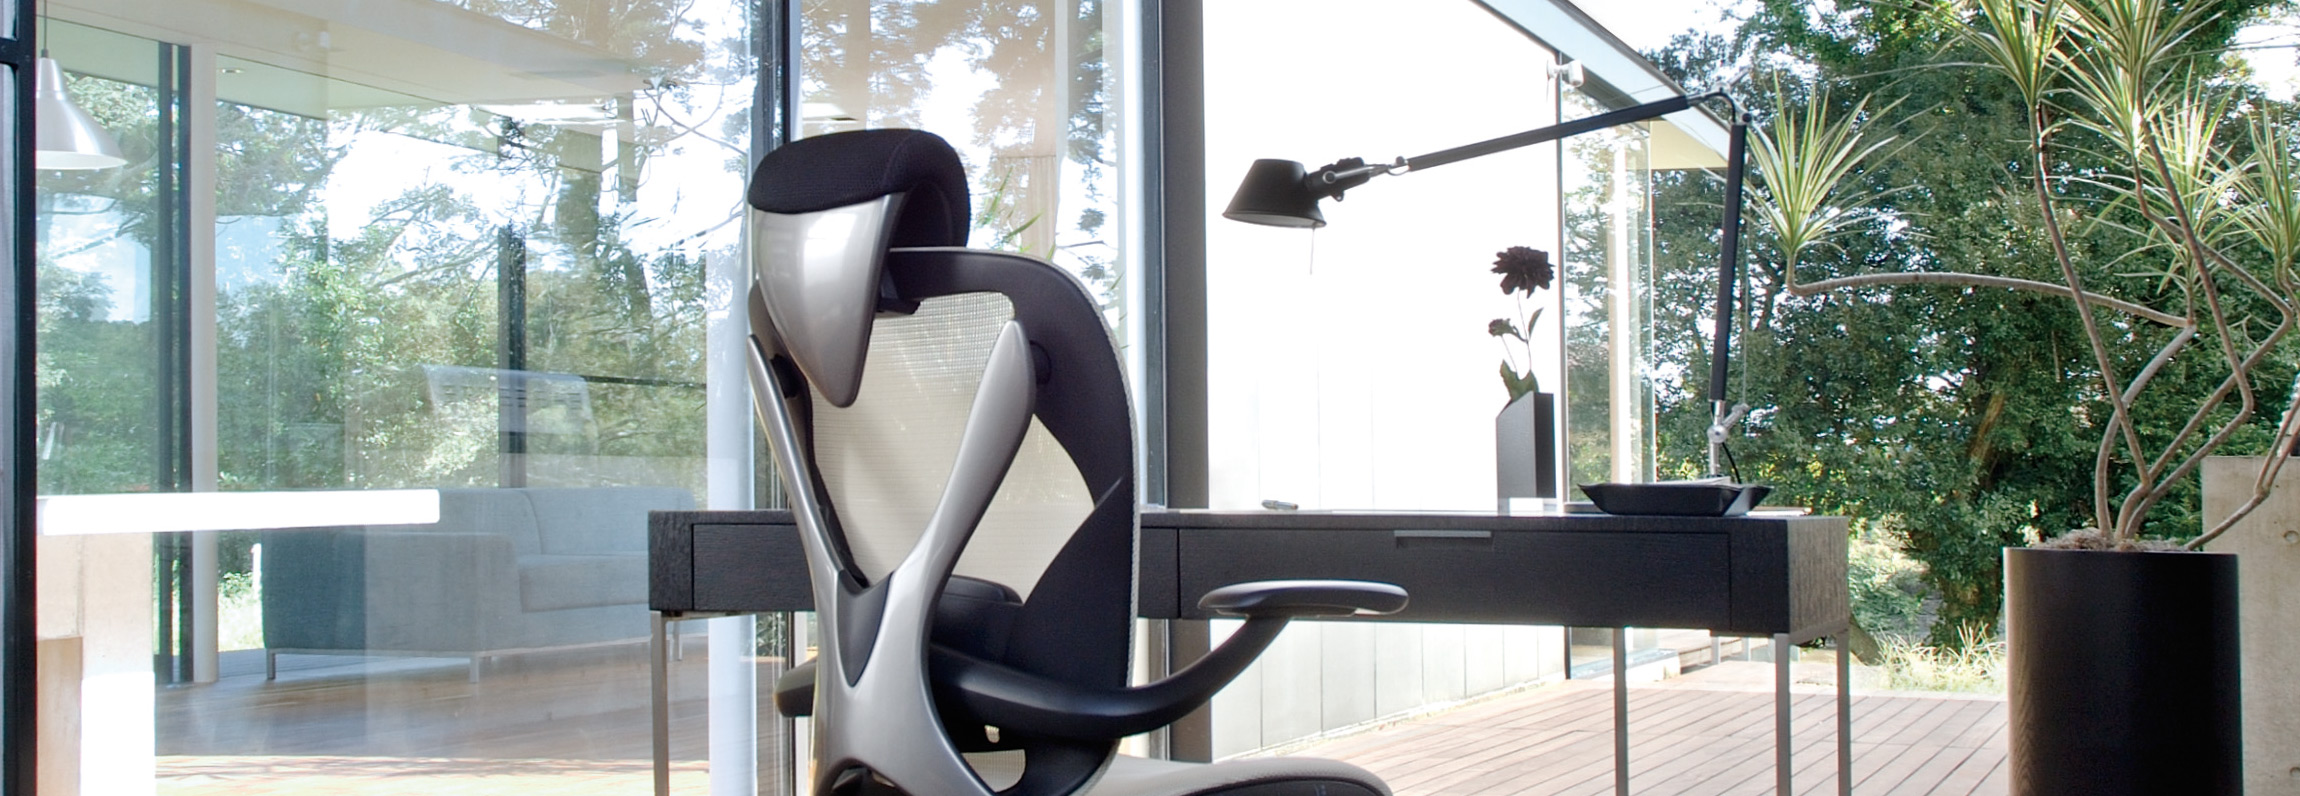 positive posture massage chair standards try our true zero gravity recliners risk free for 30 days